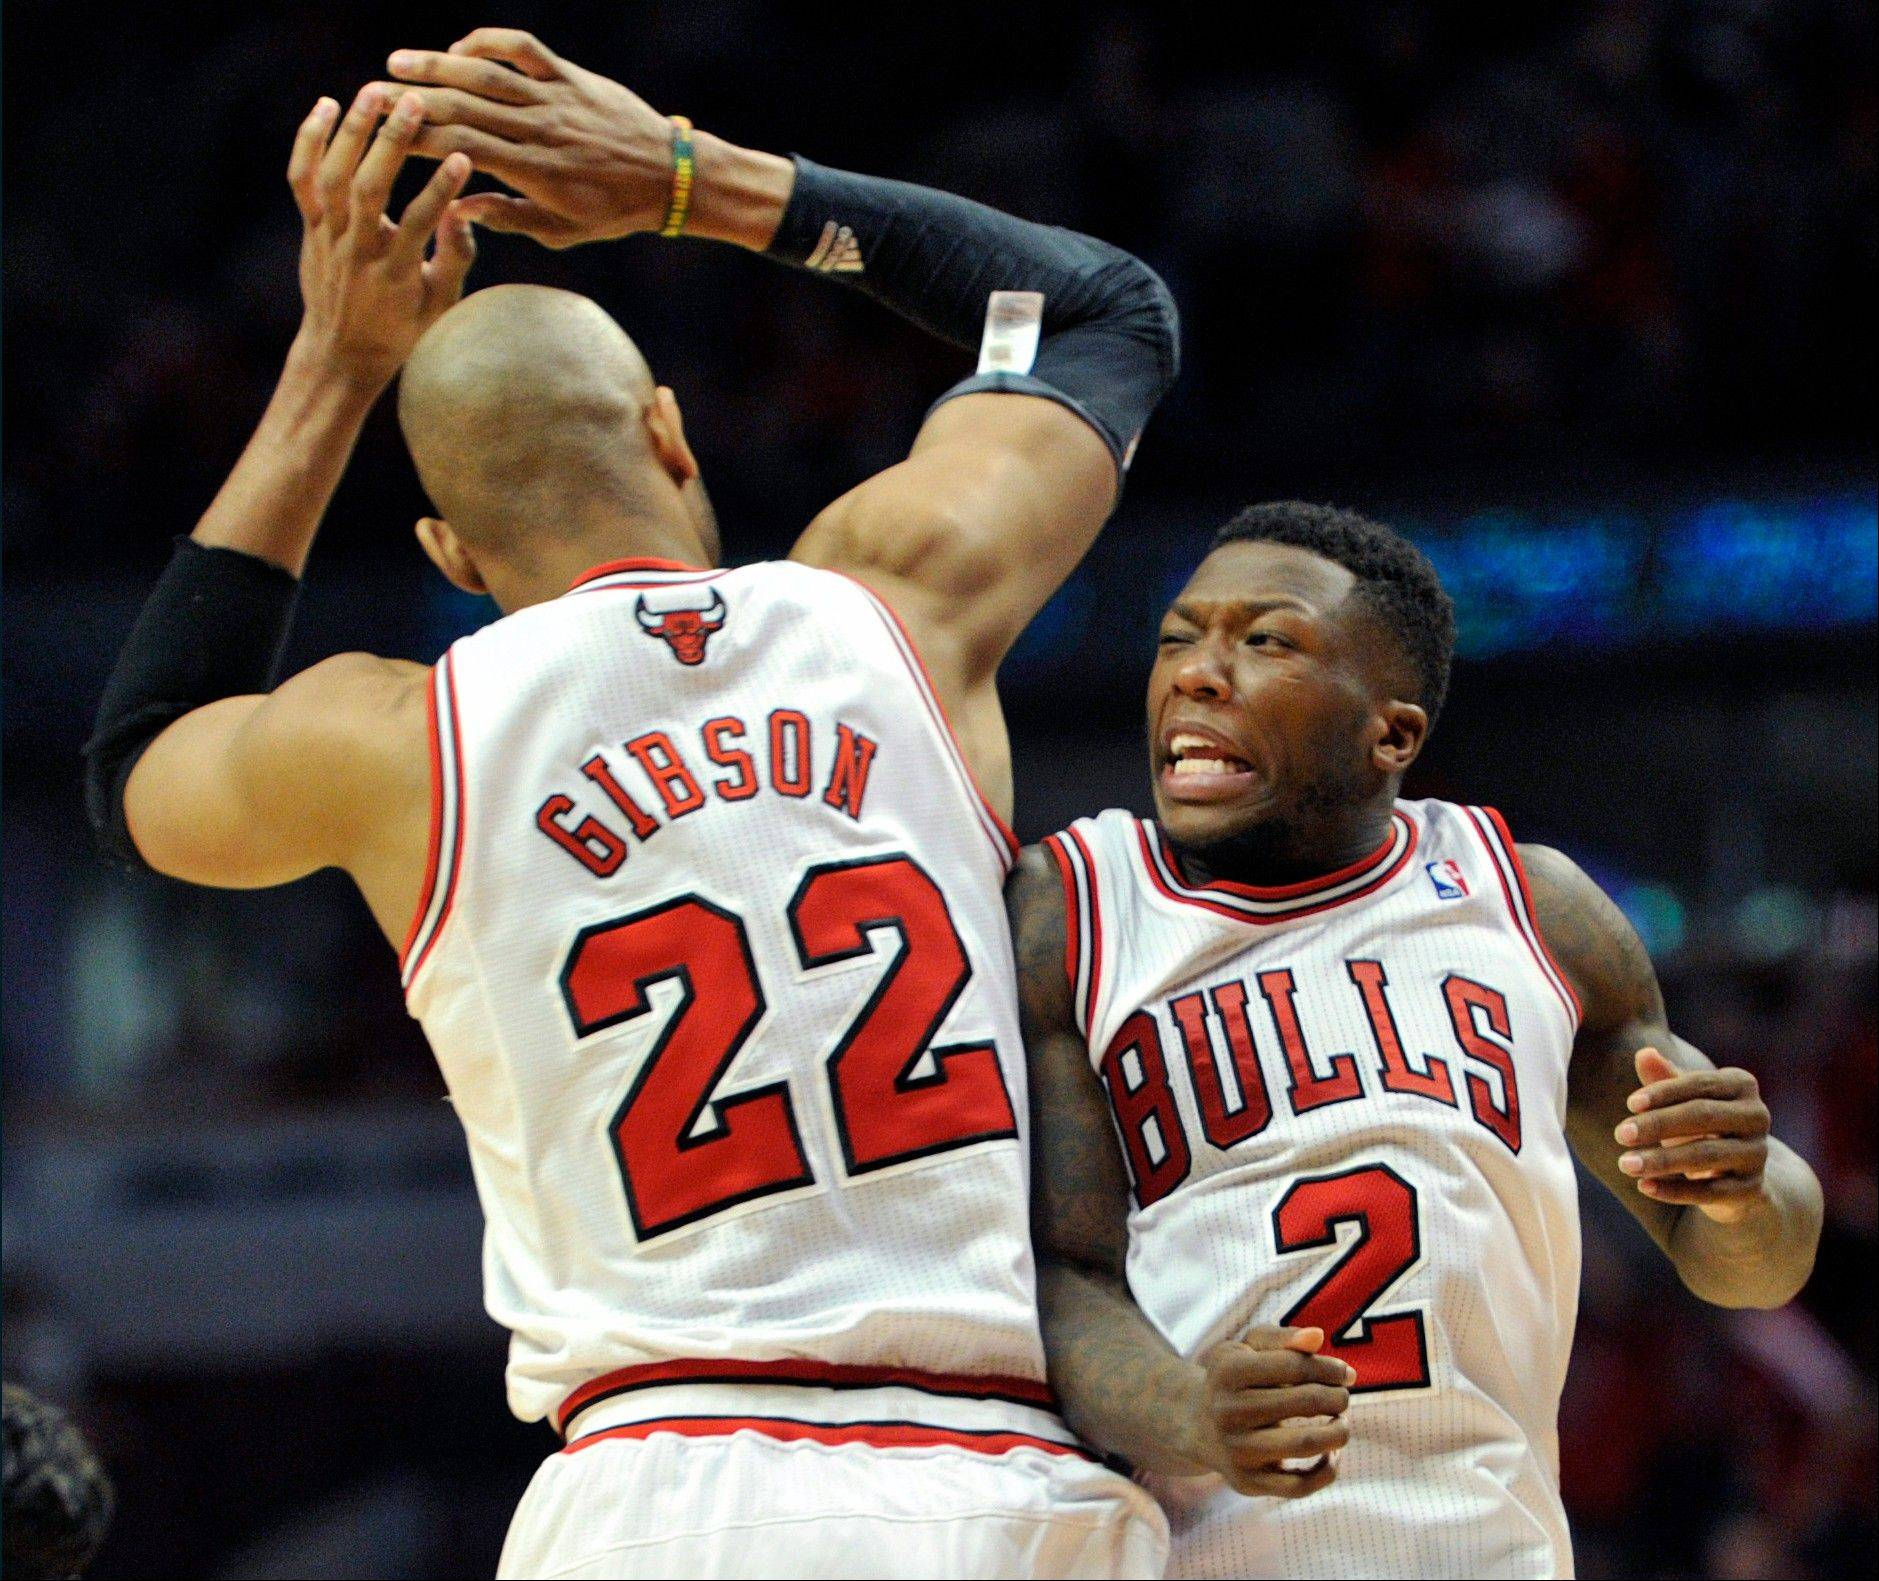 Chicago Bulls� Taj Gibson (22) and Nate Robinson (2) celebrate a basket against the Brooklyn Nets during the second overtime in Game 4 of their first-round NBA basketball playoff series Saturday, April 27, 2013, in Chicago. The Bulls won 142-134 in three overtimes.